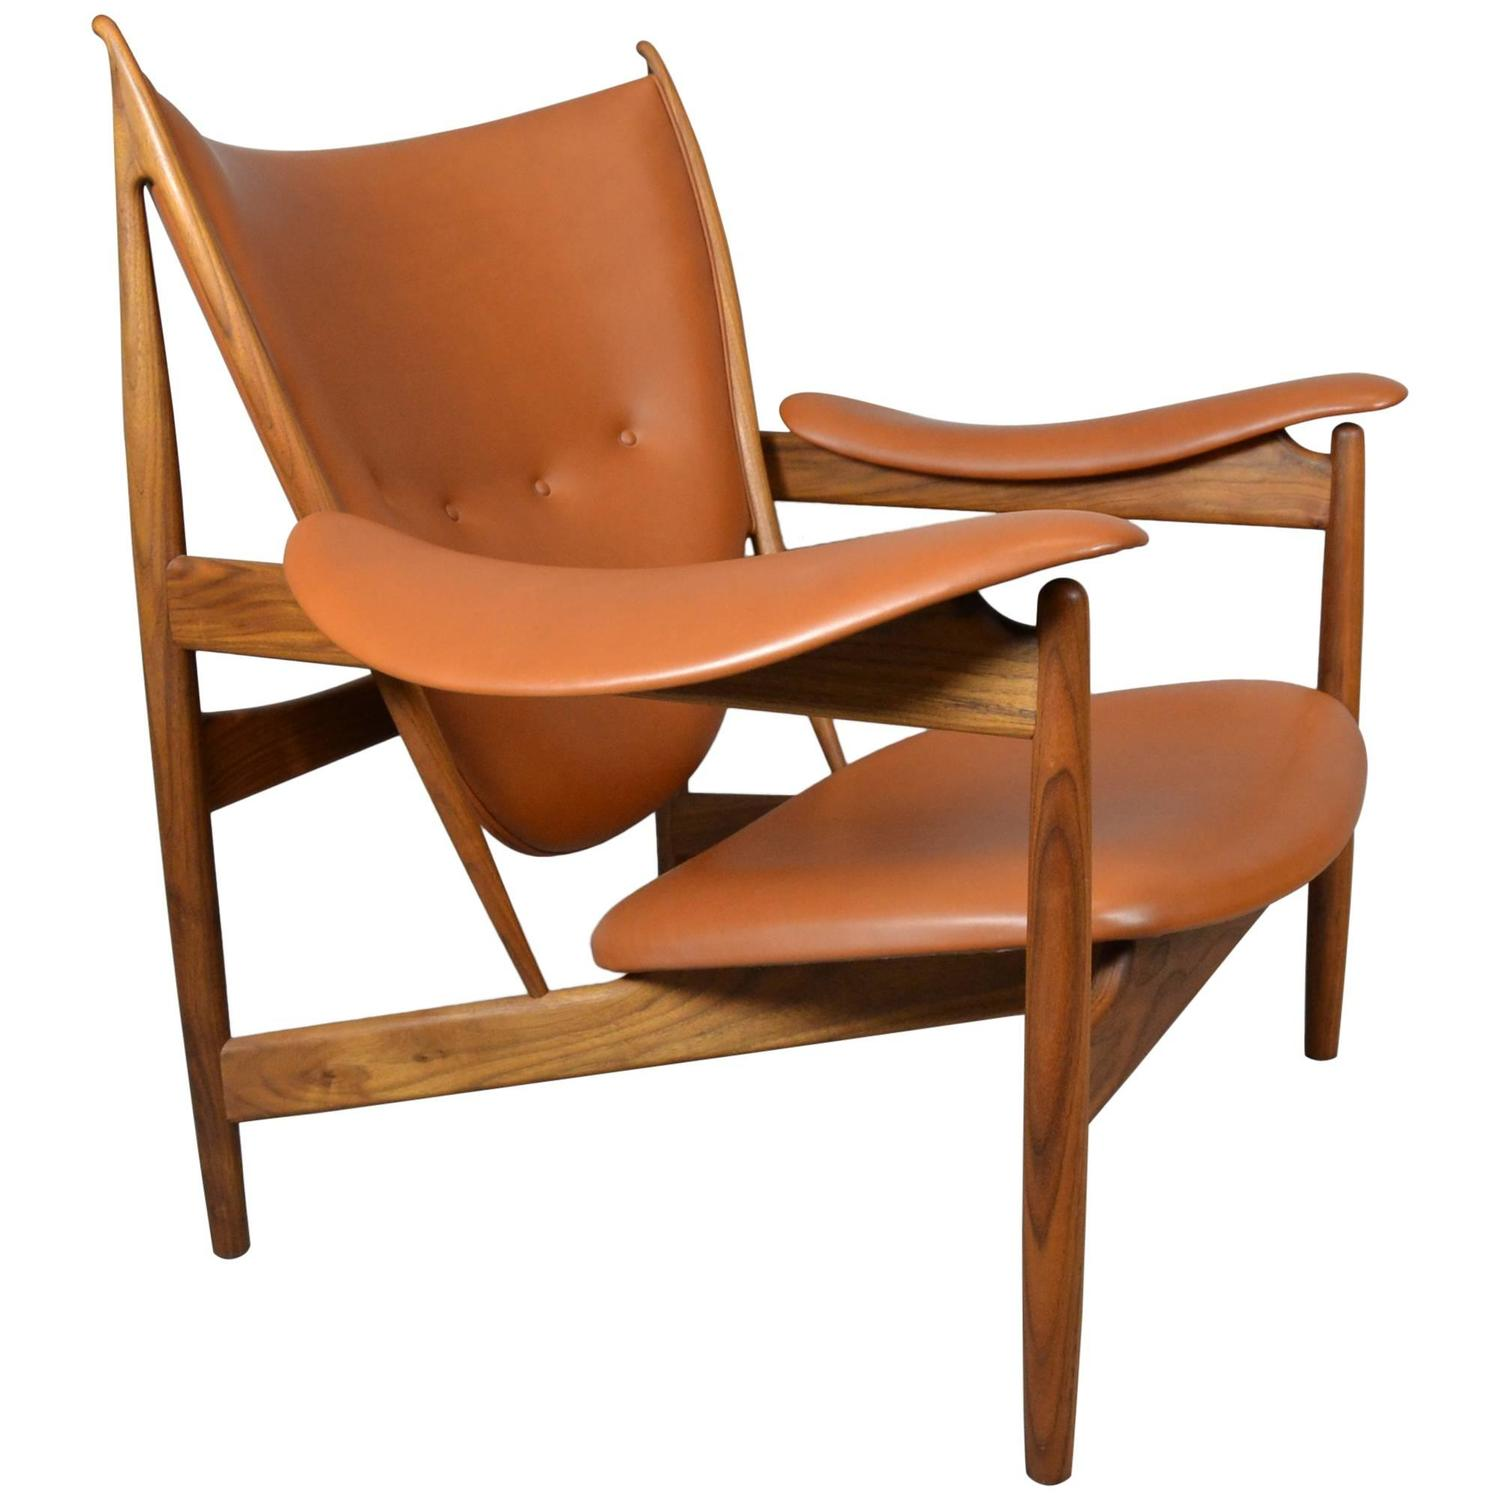 Finn Juhl Chieftain Chair By Onecollection At 1stdibs